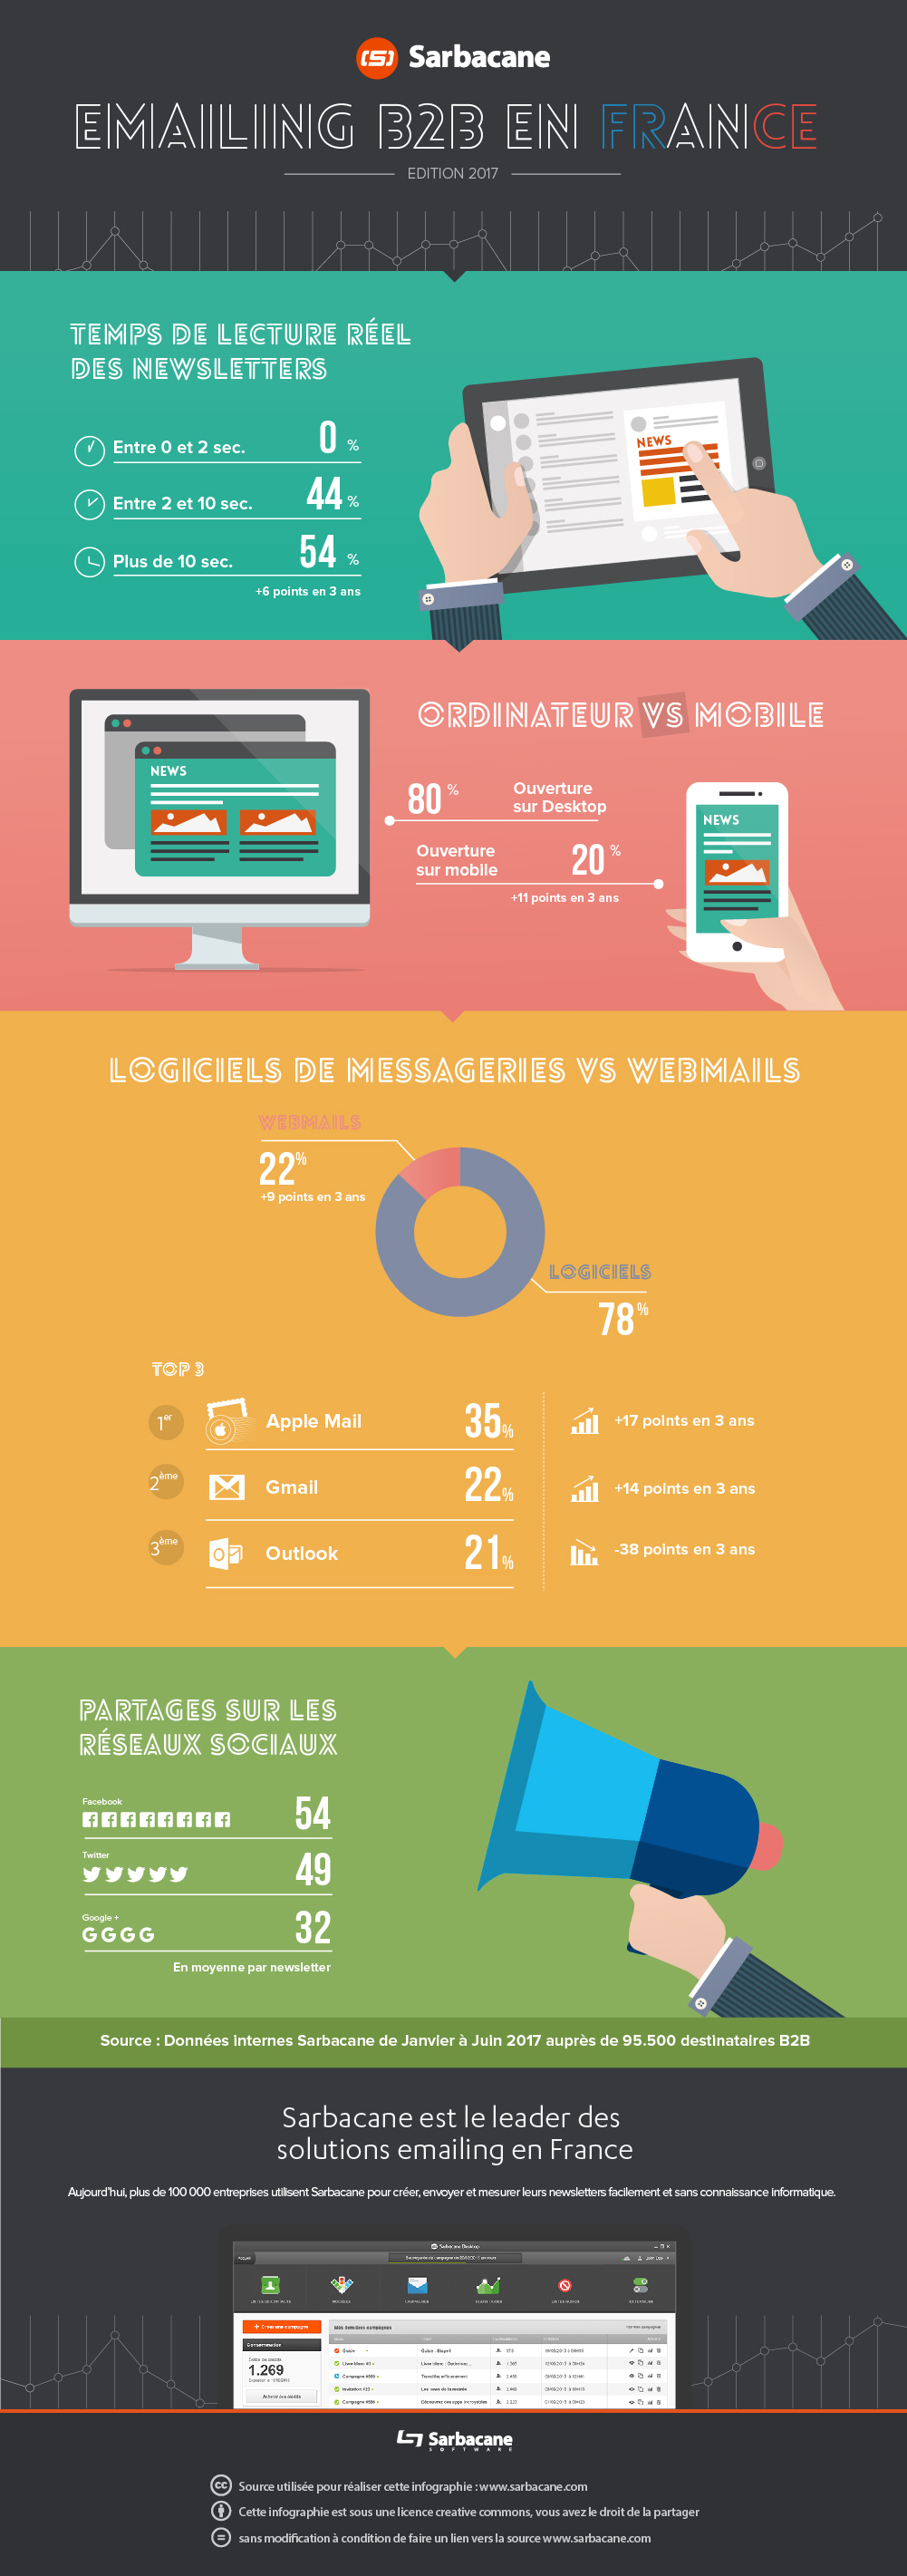 Infographie emailing B2B 2017